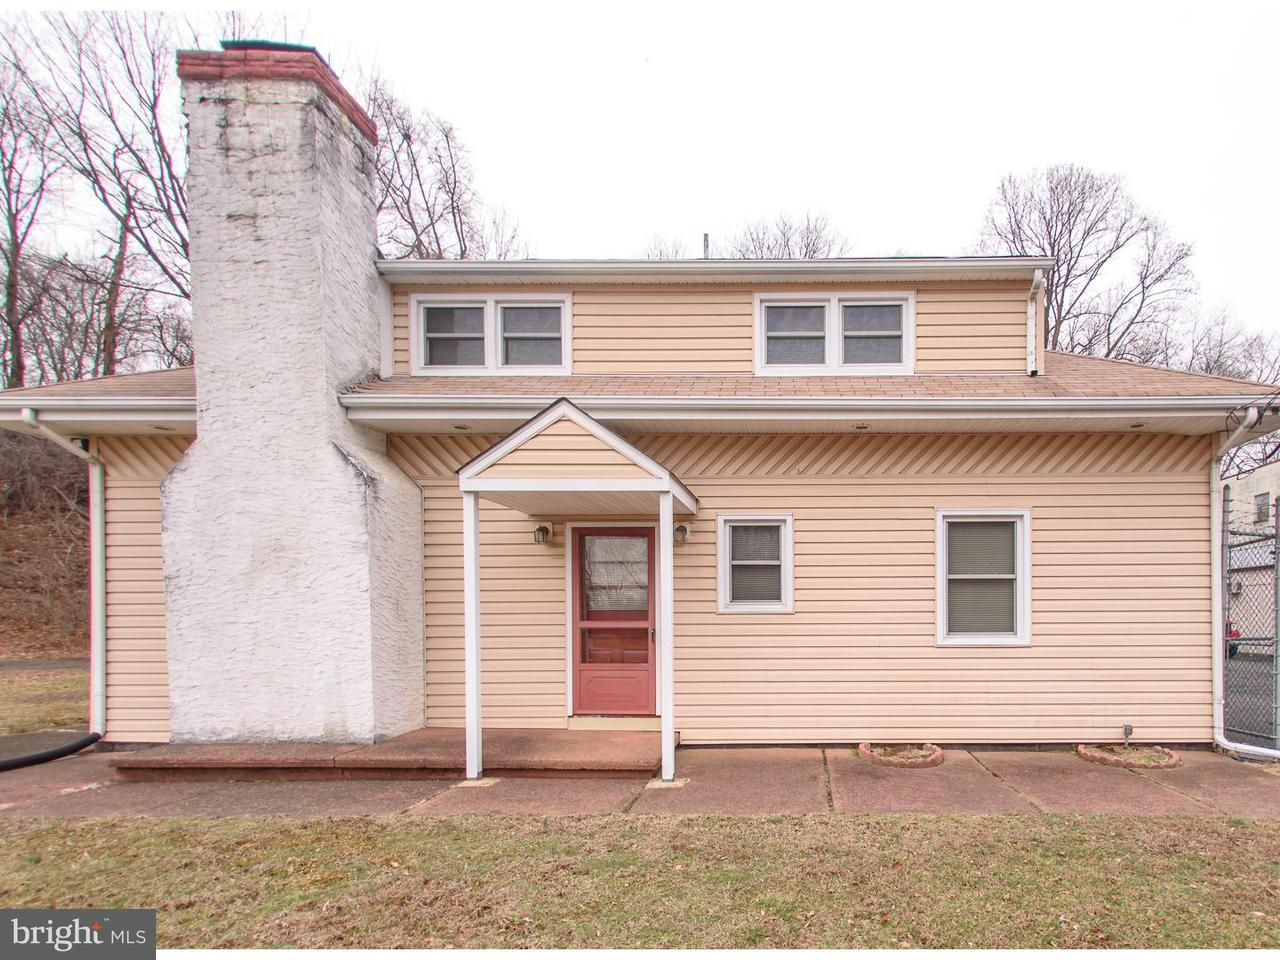 Single Family Home for Sale at 950 WOODBOURNE Road Langhorne, Pennsylvania 19047 United States